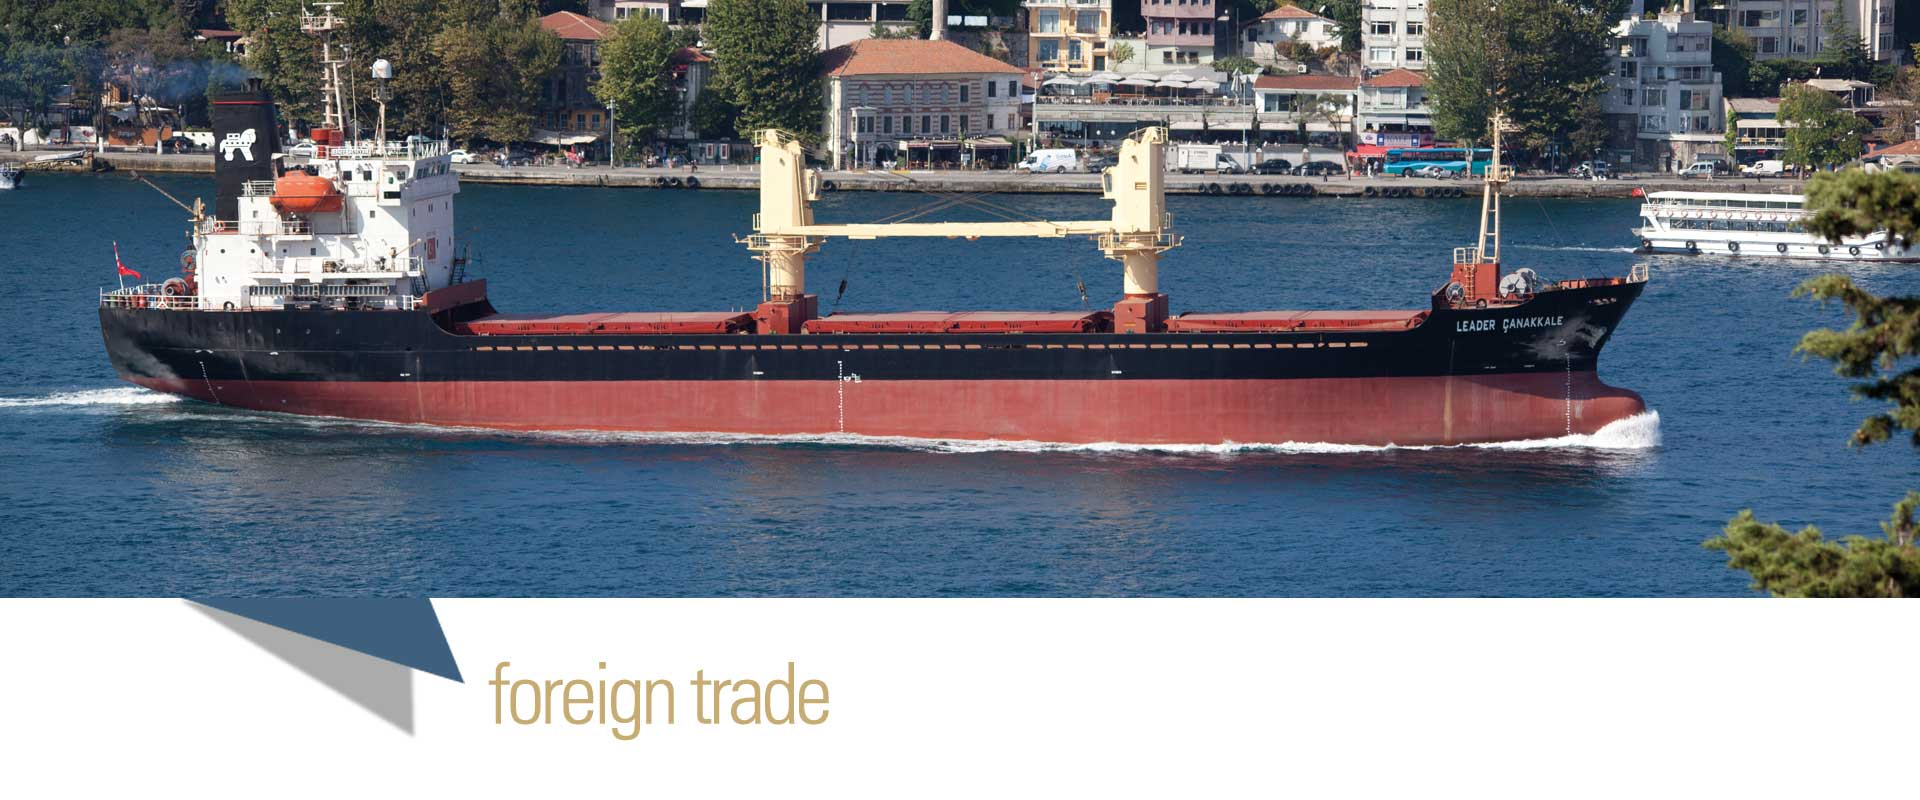 foreign-trade2